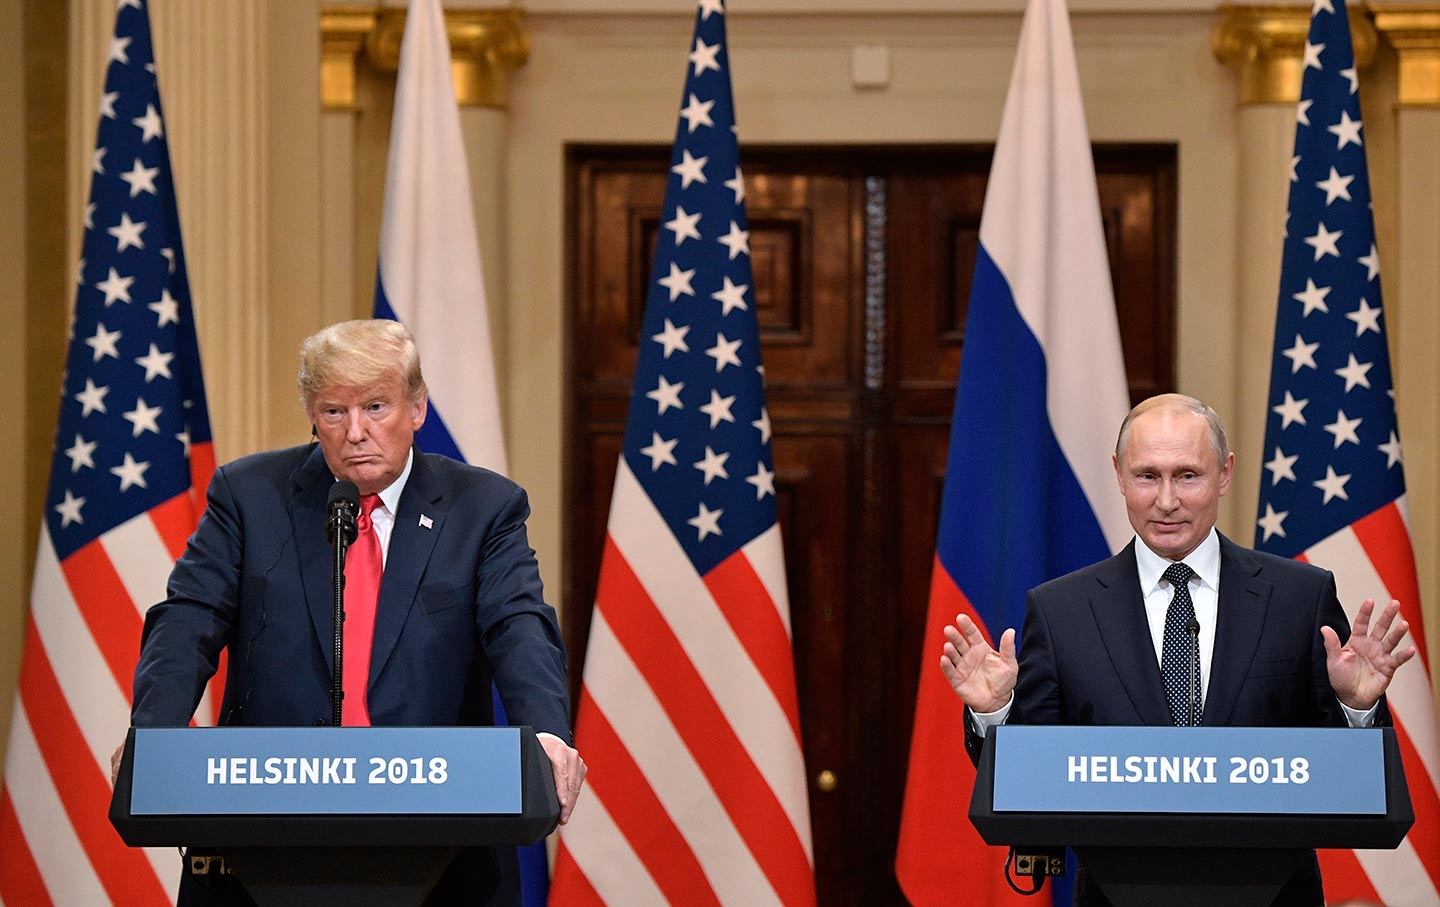 Trump and Putin at Helsinki Summit